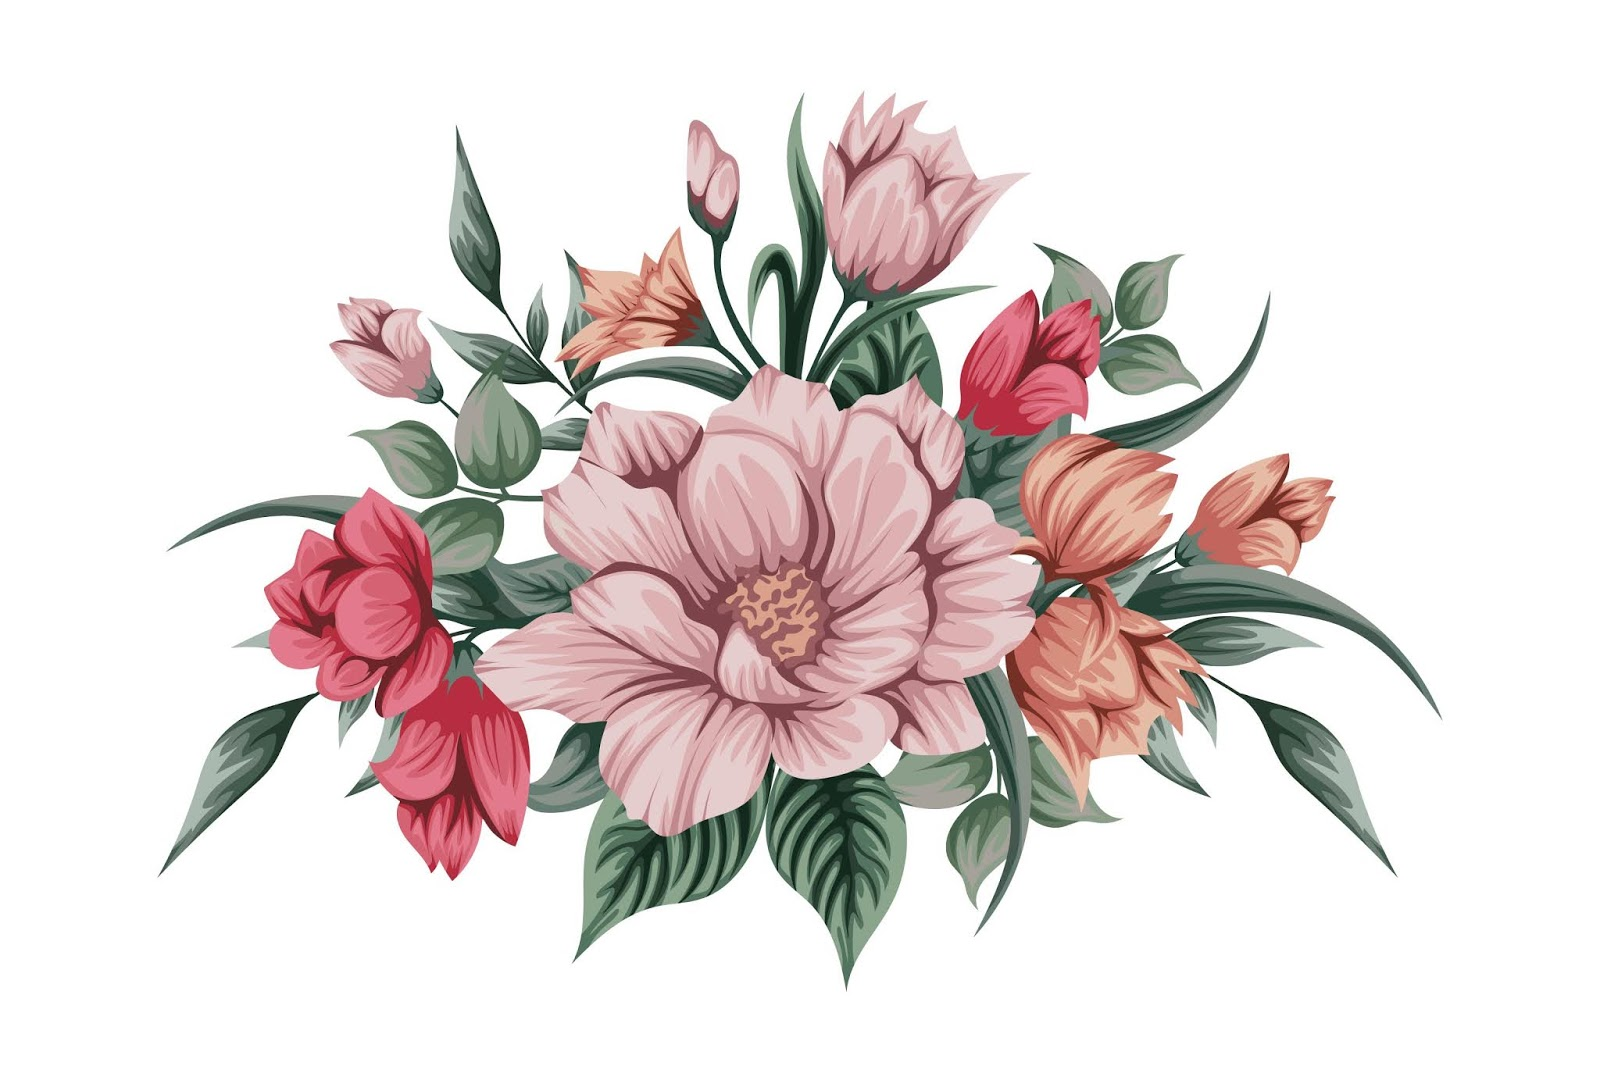 Beautiful Watercolour Bouquet Flowers Free Download Vector CDR, AI, EPS and PNG Formats